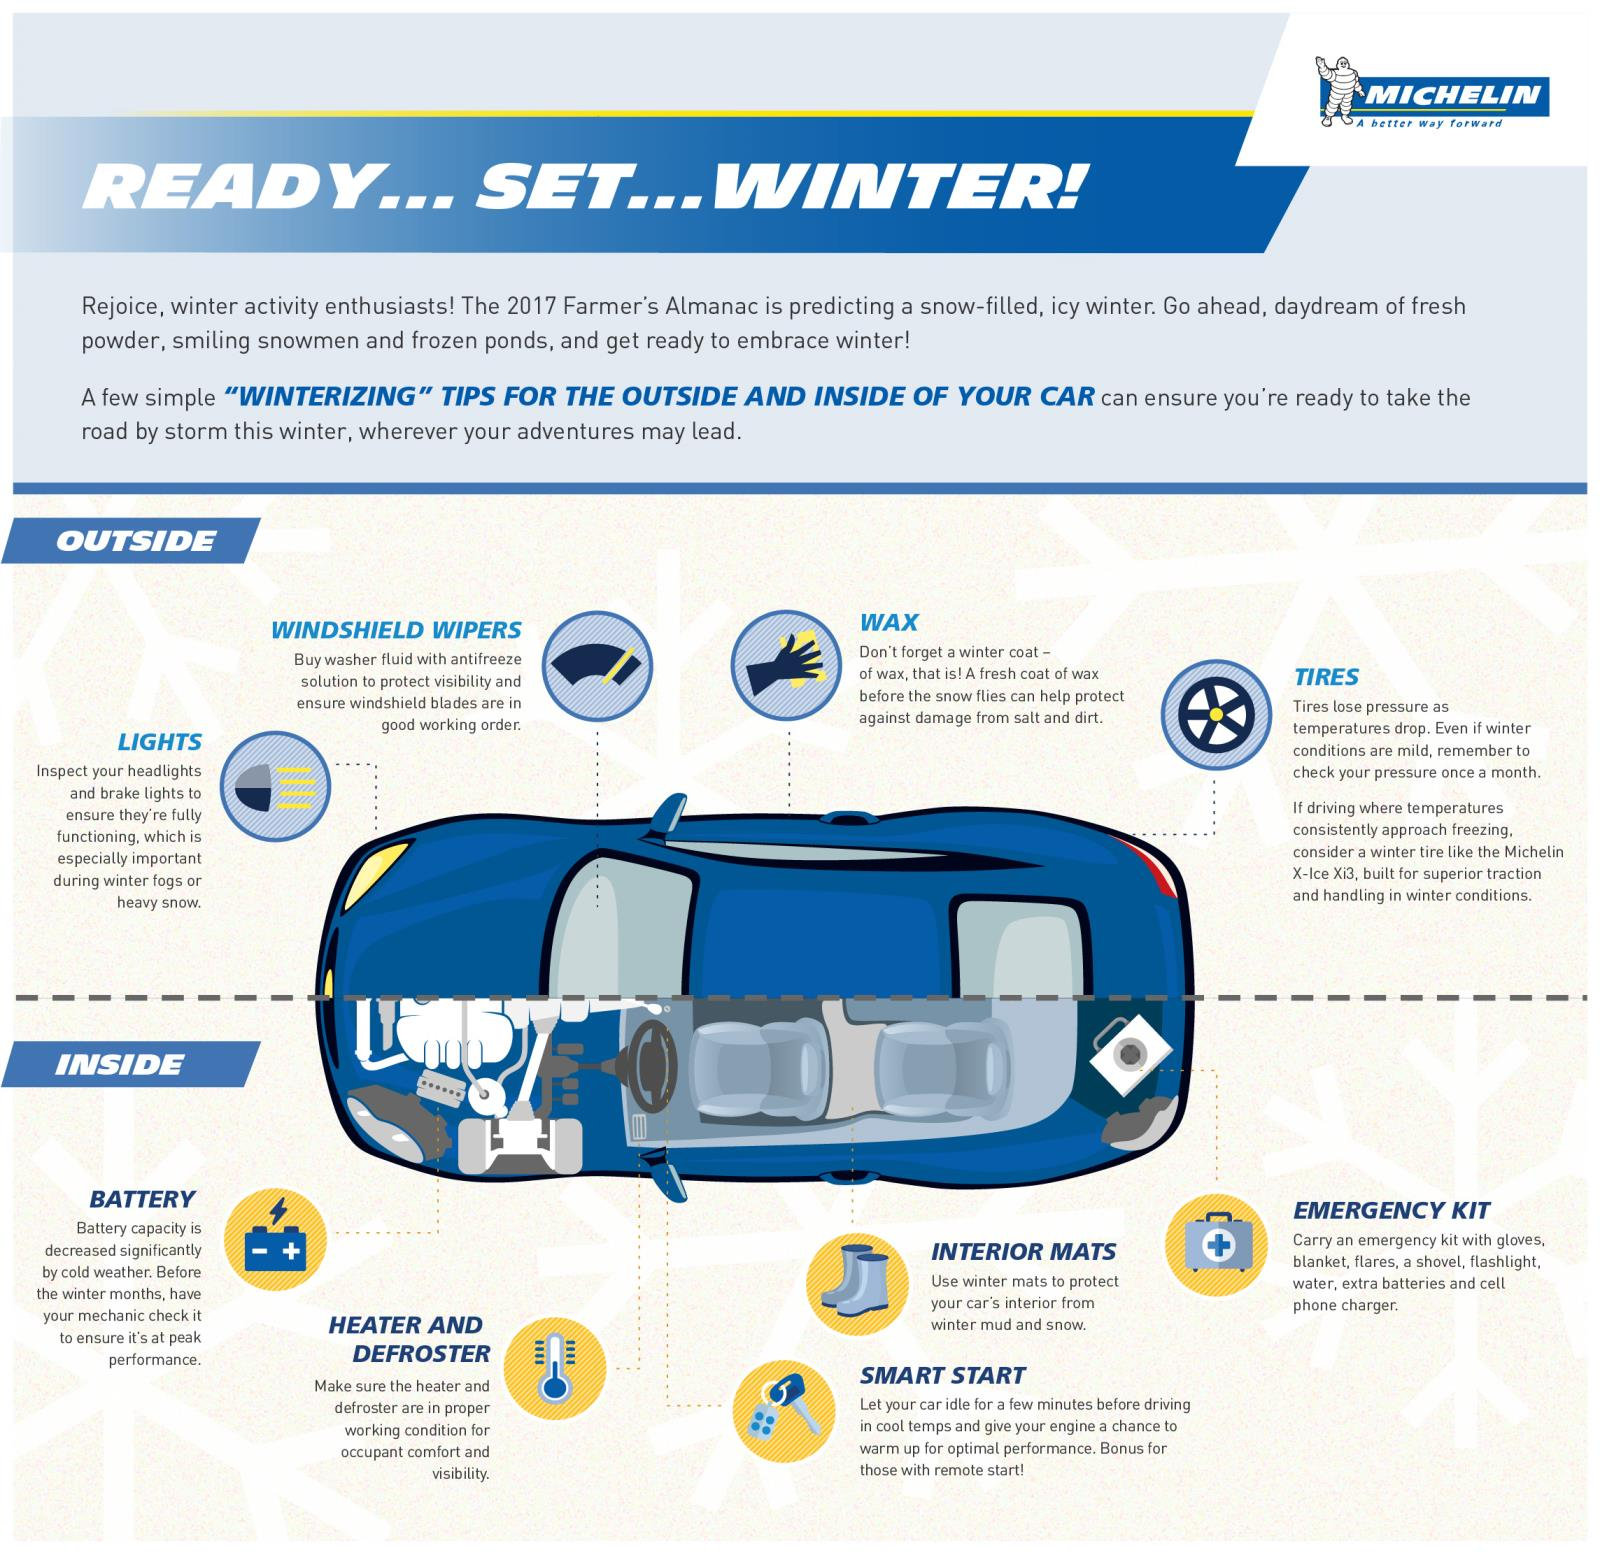 Michelin_WinterInfographic_10_16_v7_01.jpg